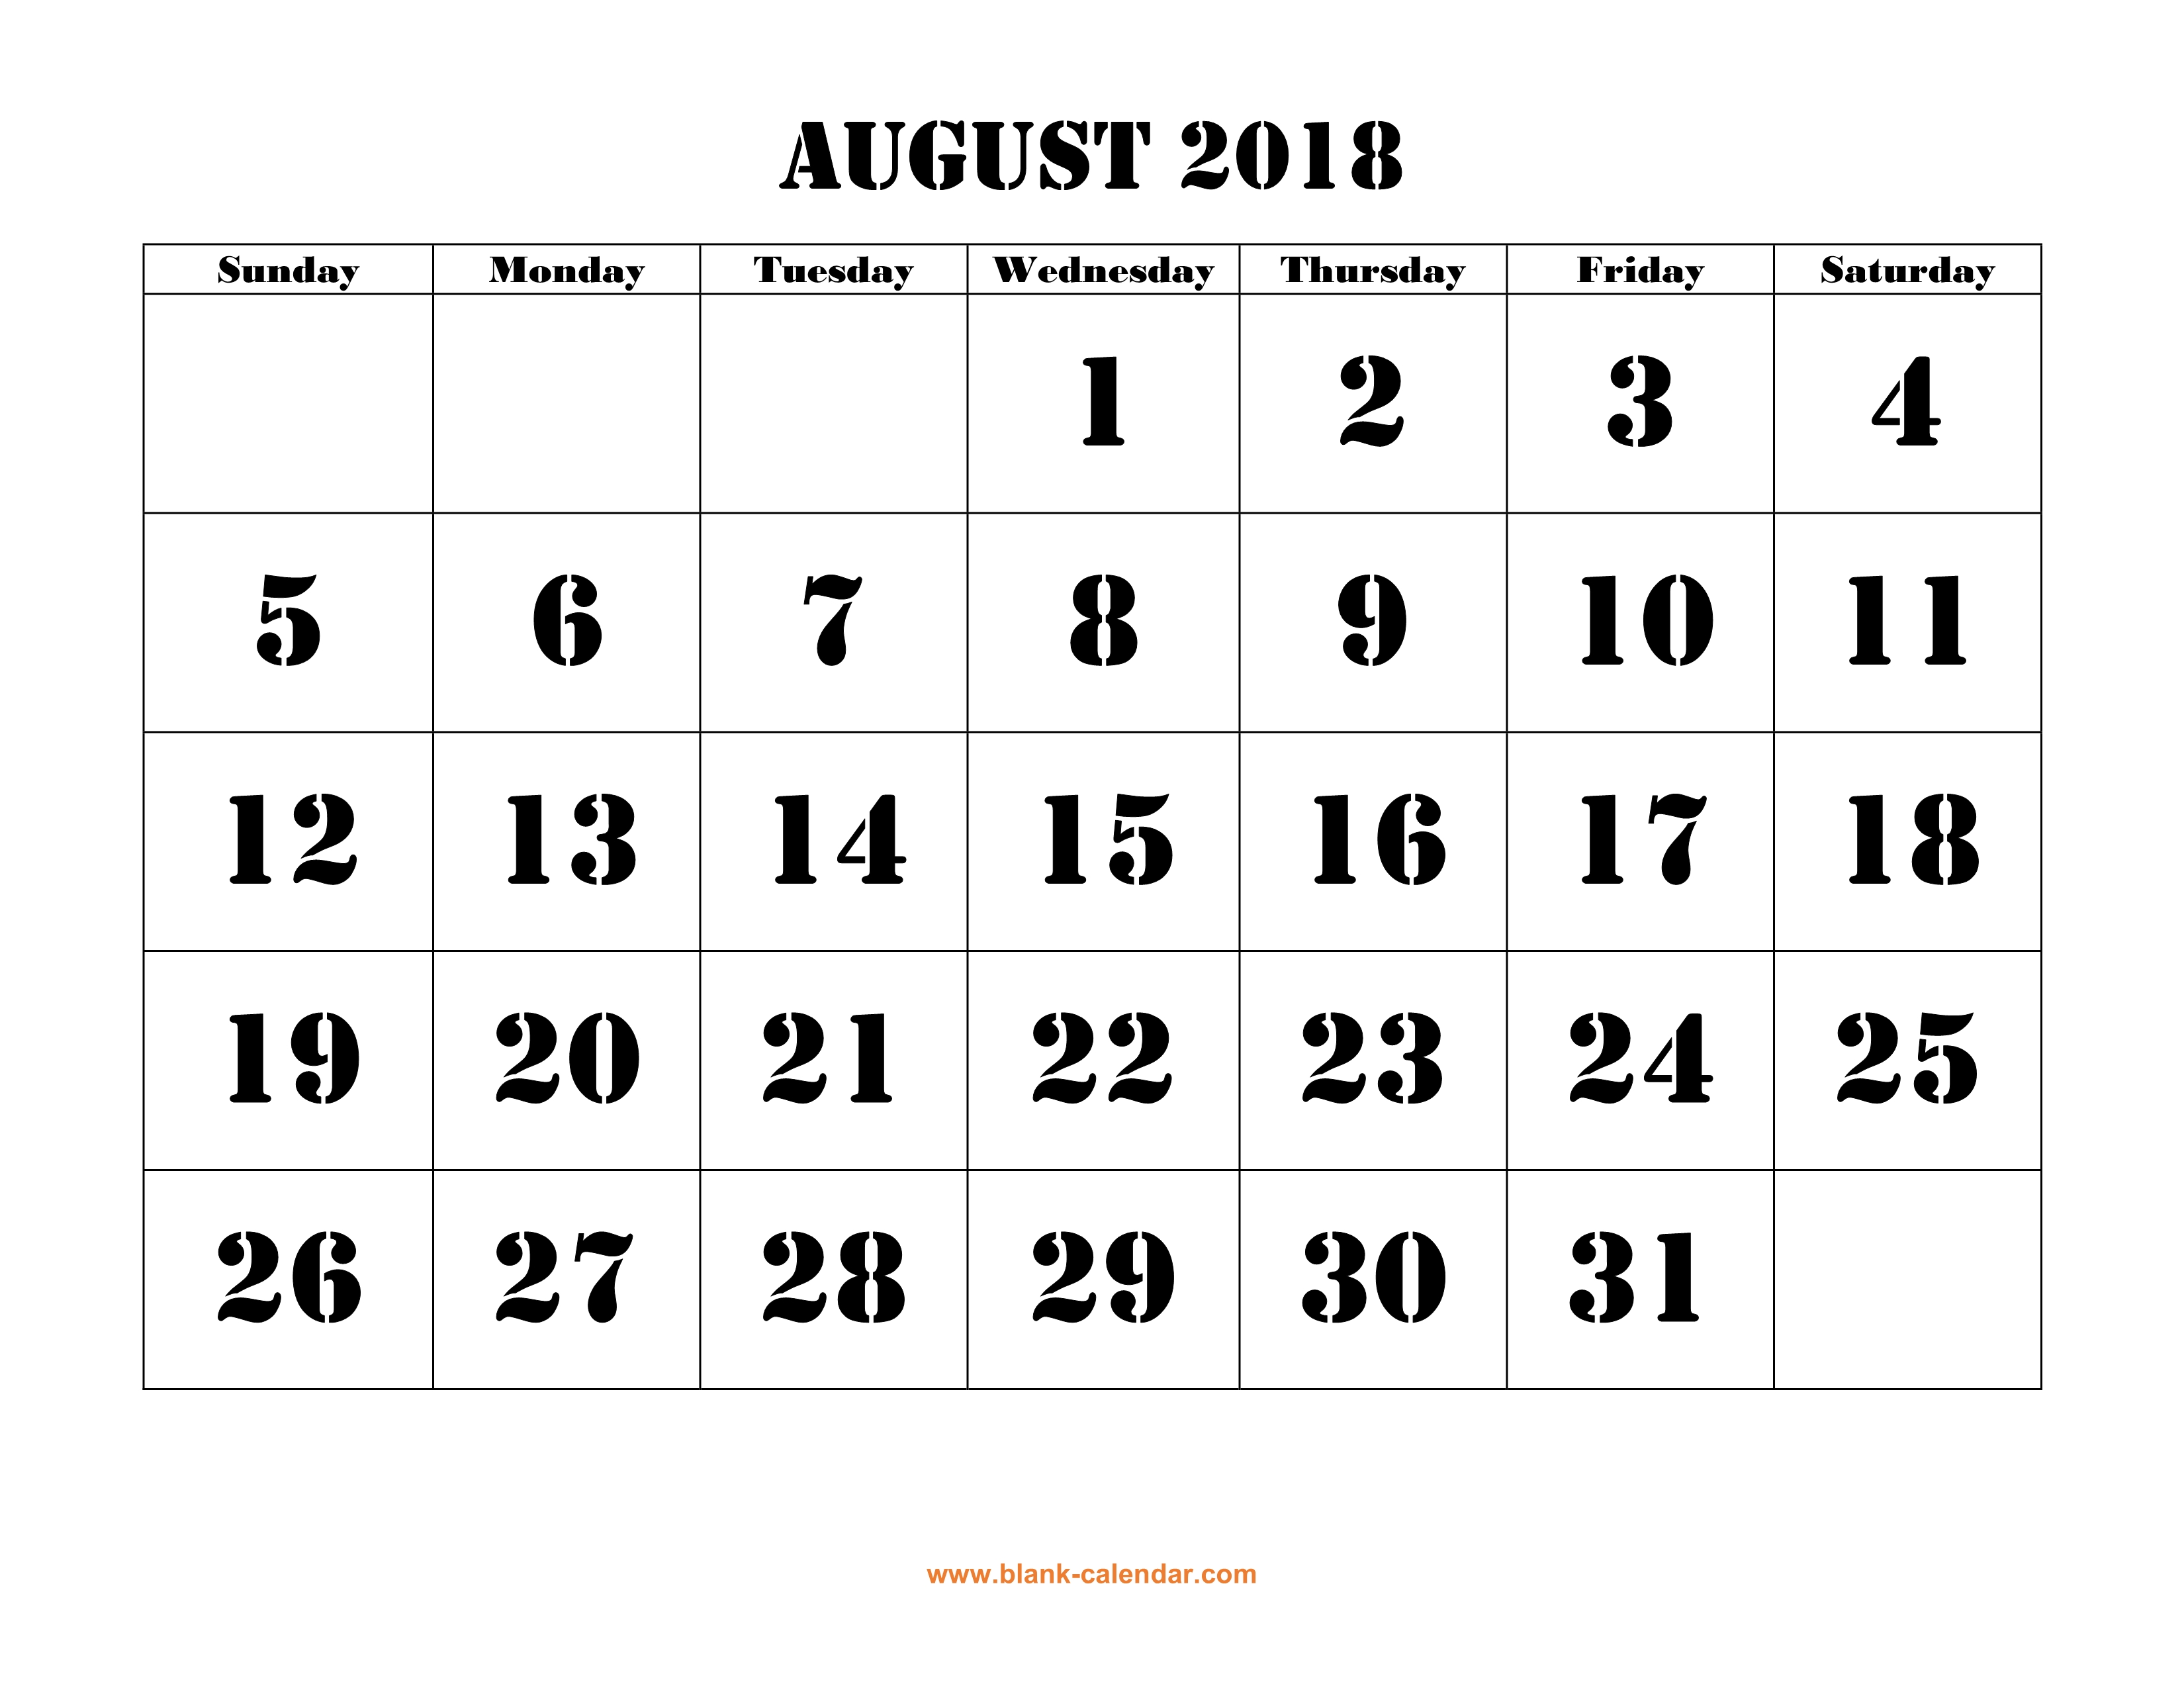 free download printable august 2018 calendar large font design holidays on red